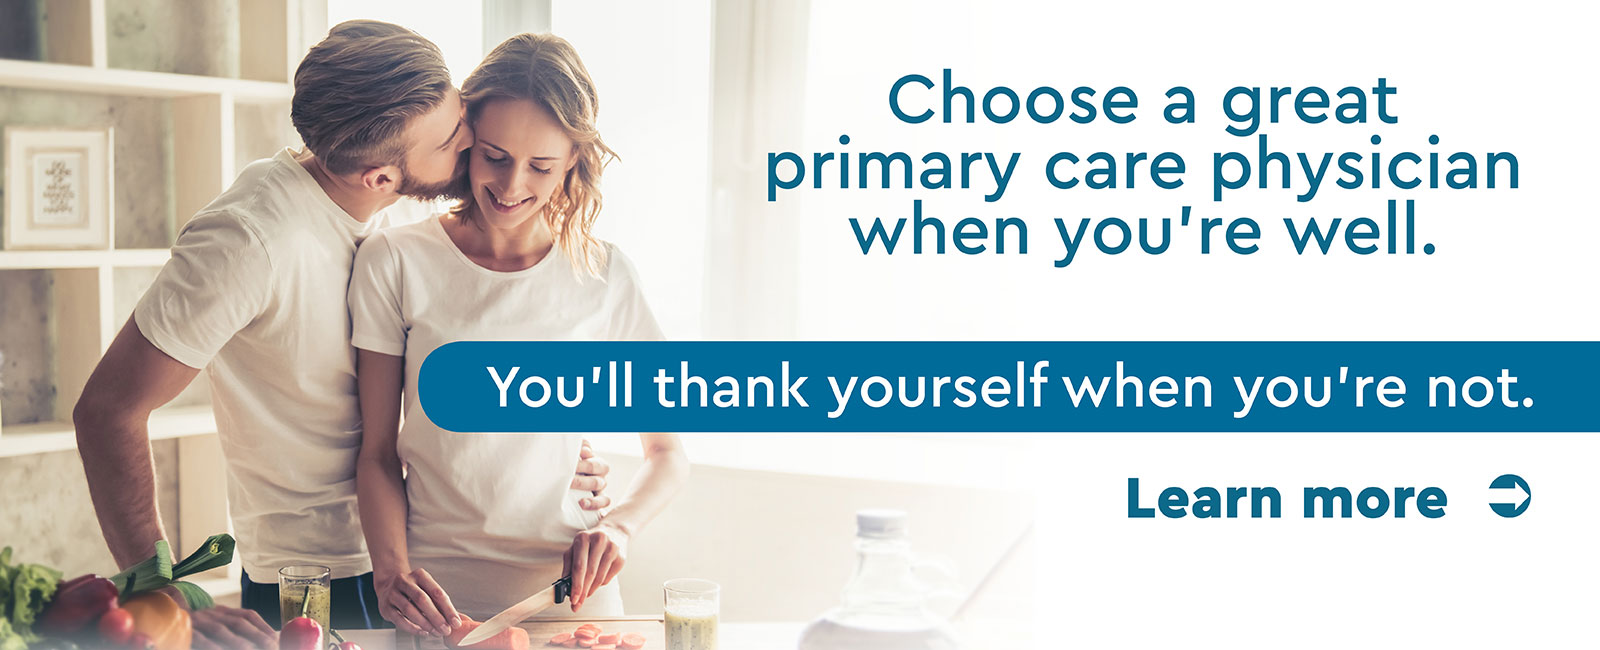 Choose a great Primary Care Physician when you're well. You'll thank yourself when you're not. SMGPrimaryCare.com